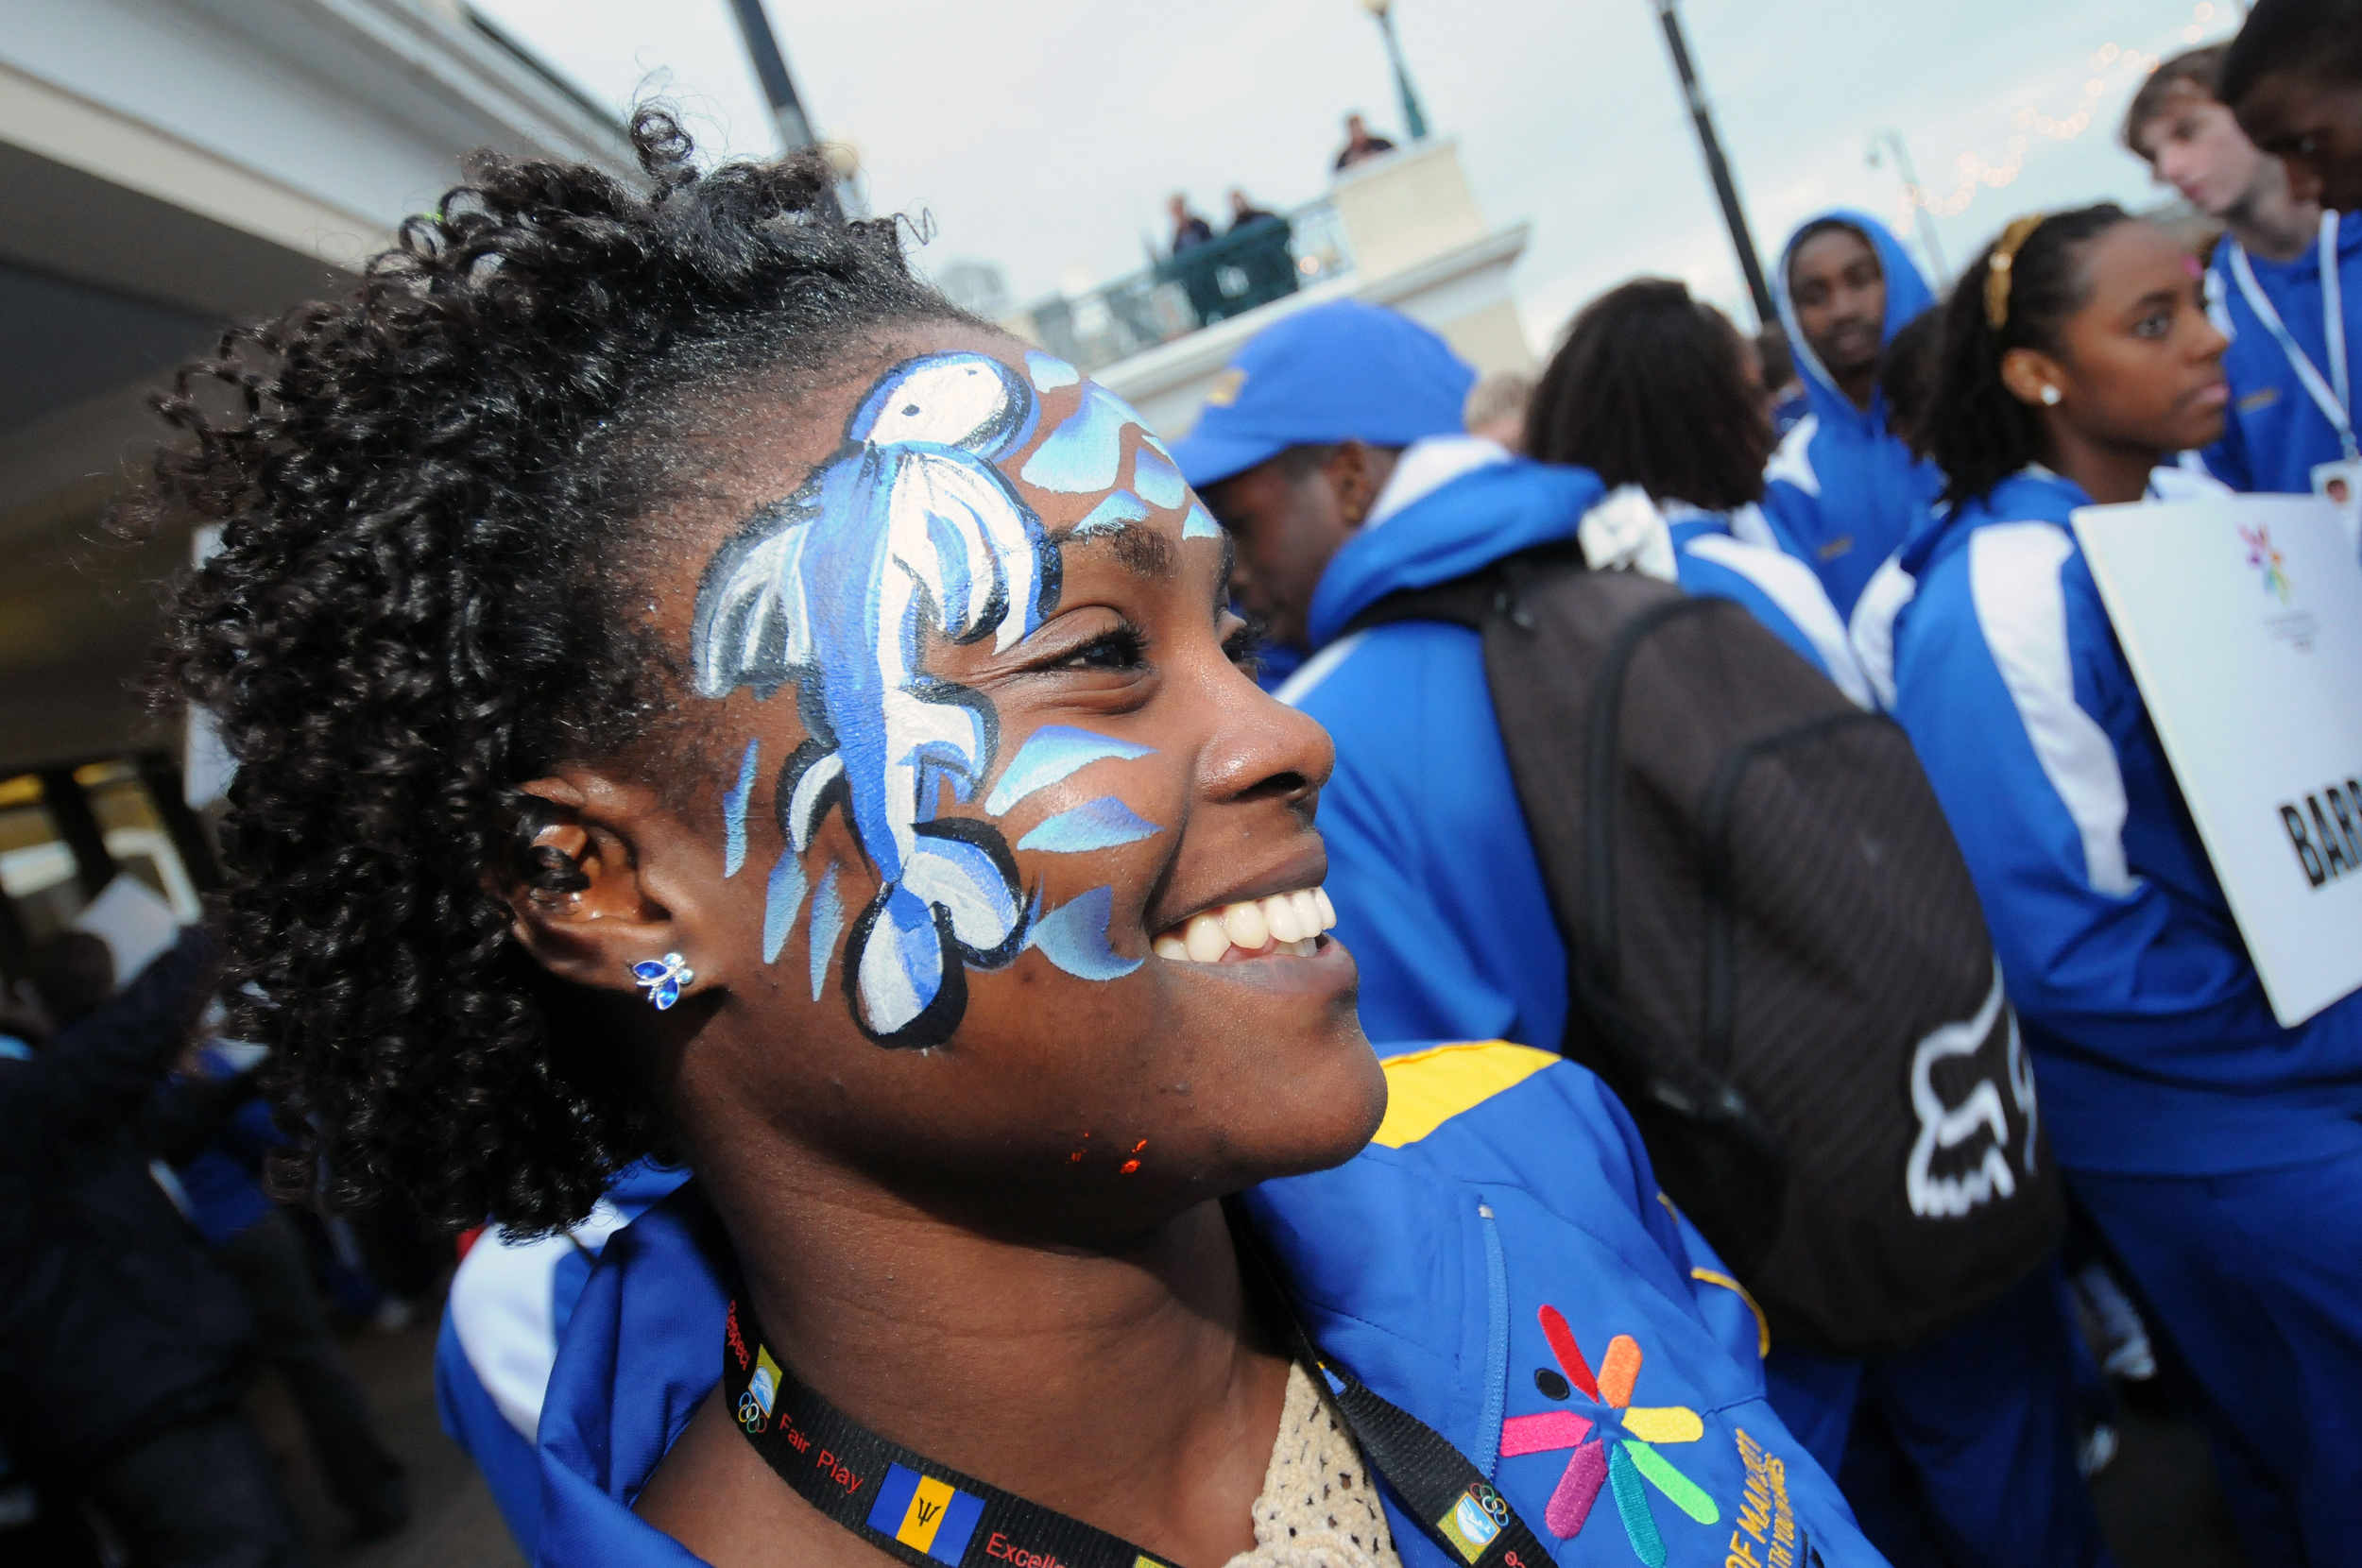 An athlete from Barbados at the closing ceremony for the 2011 Commonwealth Youth Games